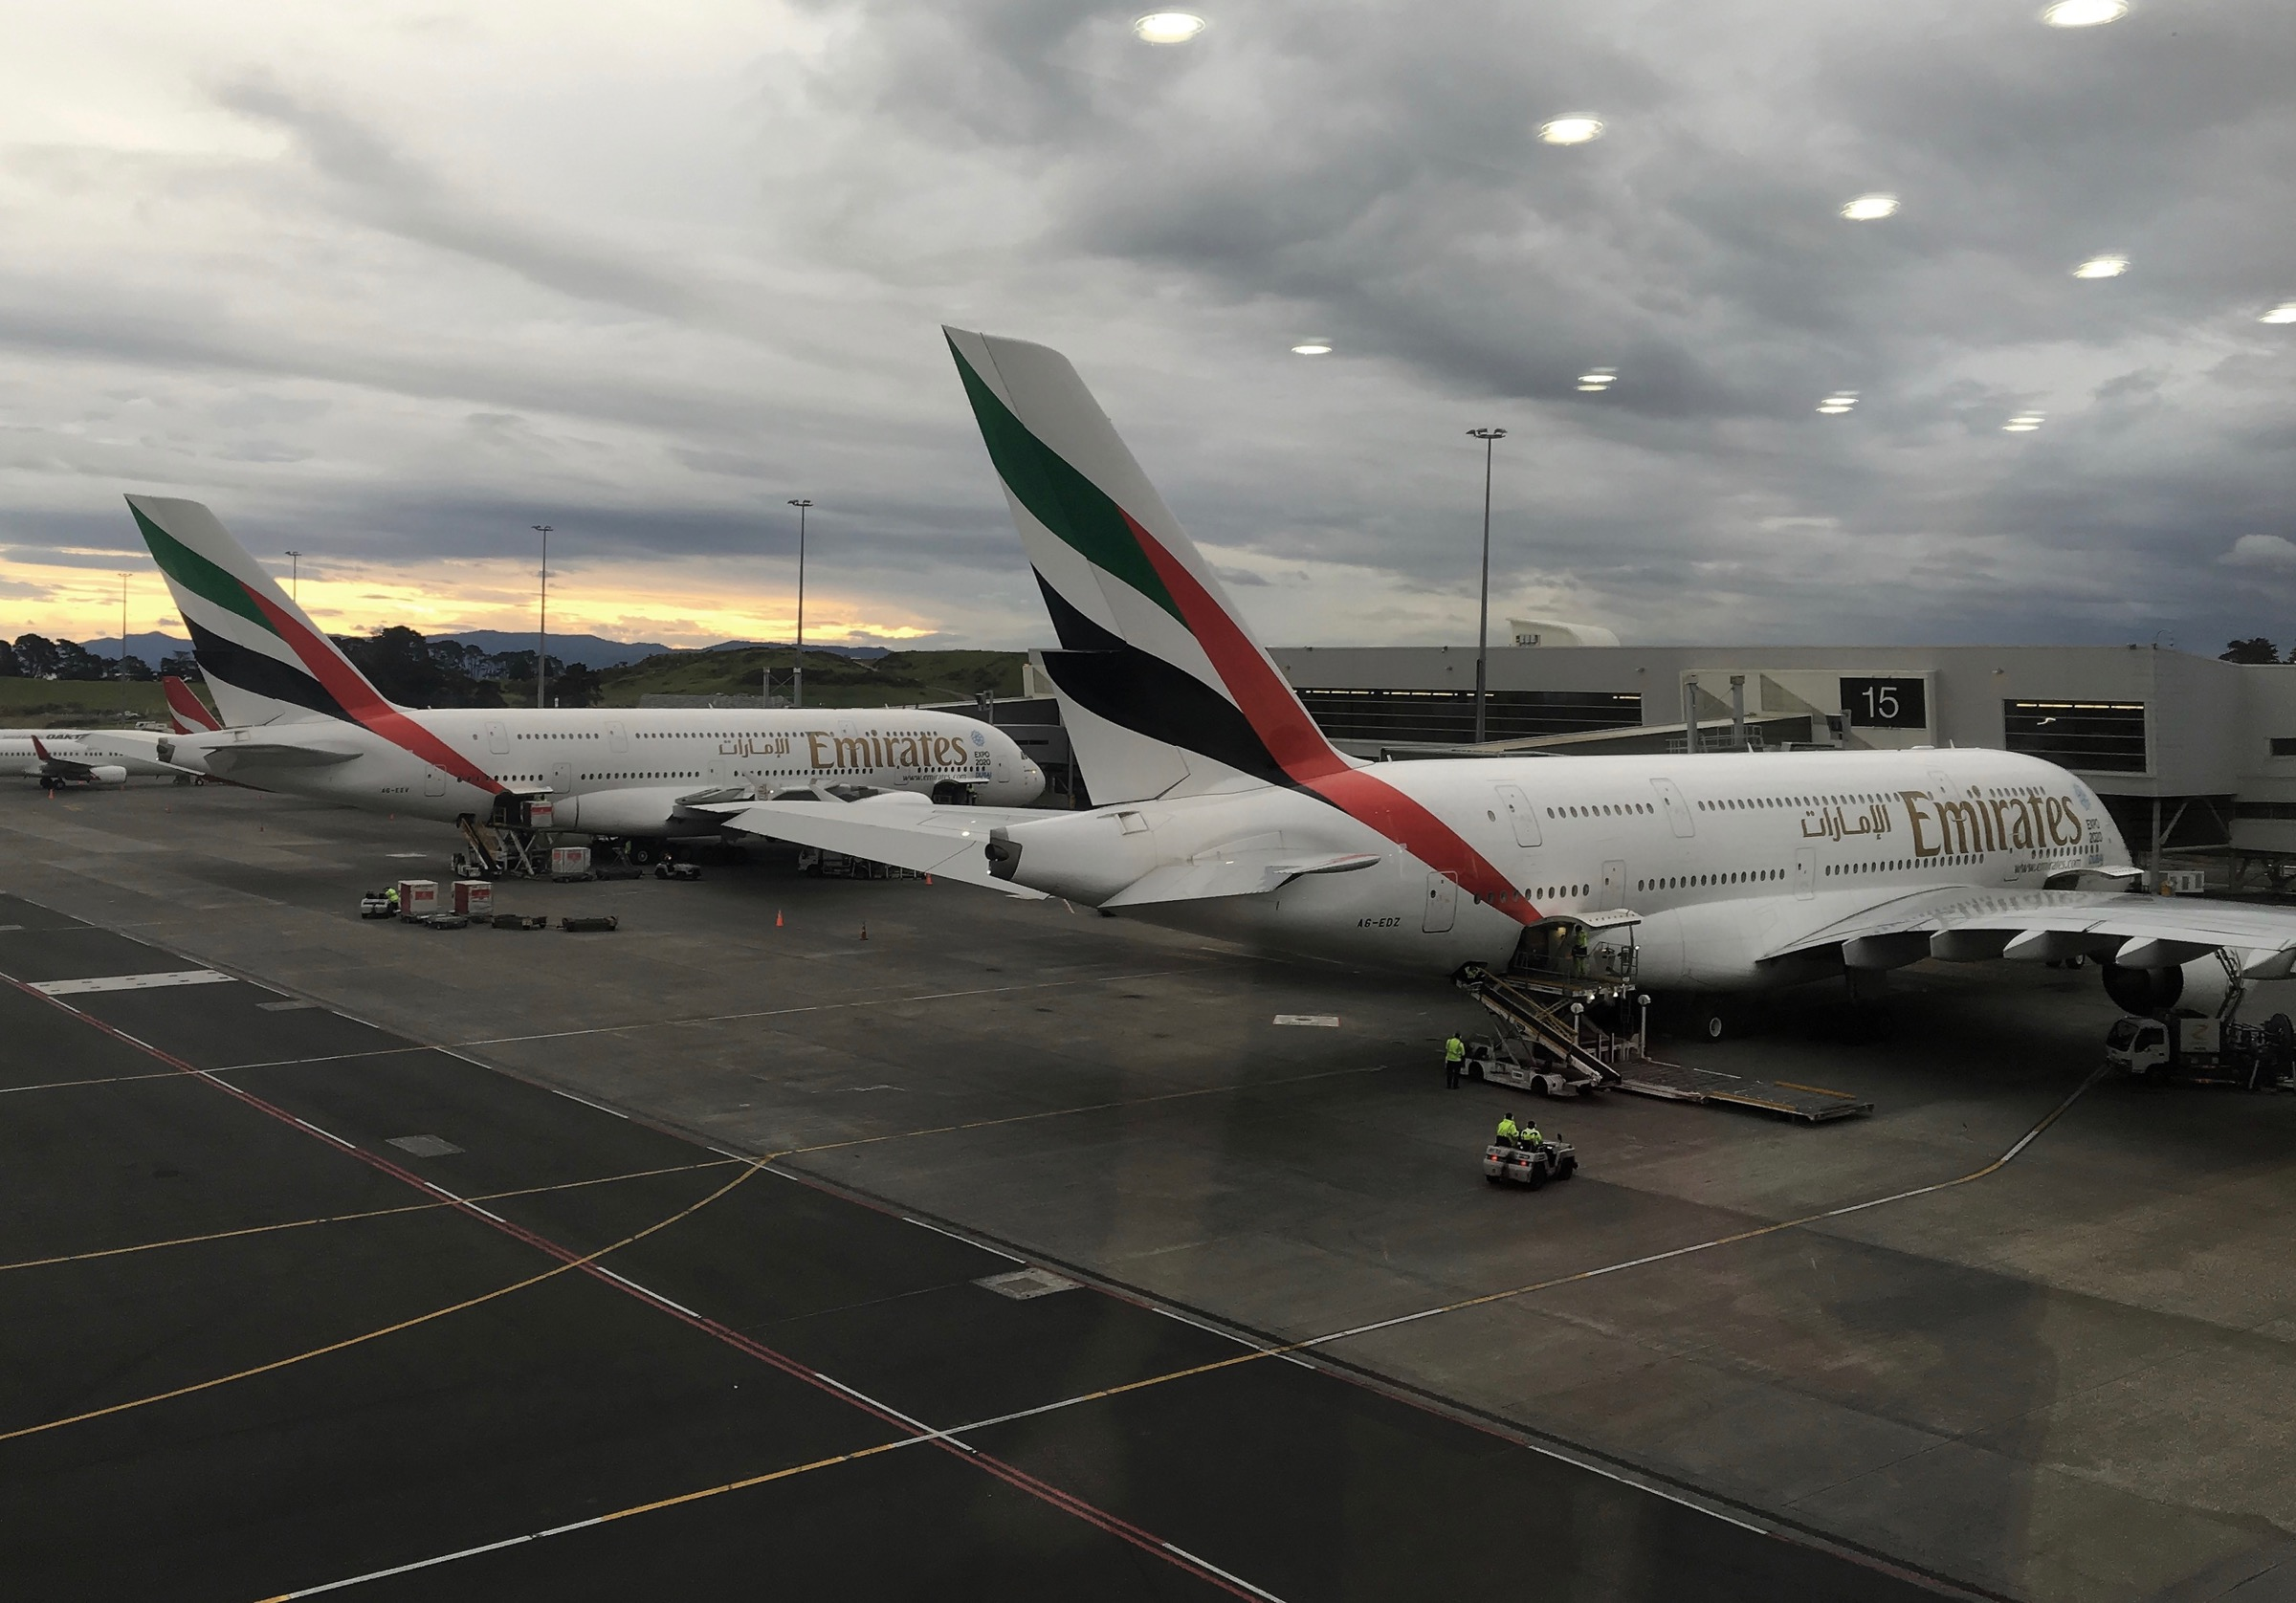 Emirates A380 on Tarmac | Point Hacks